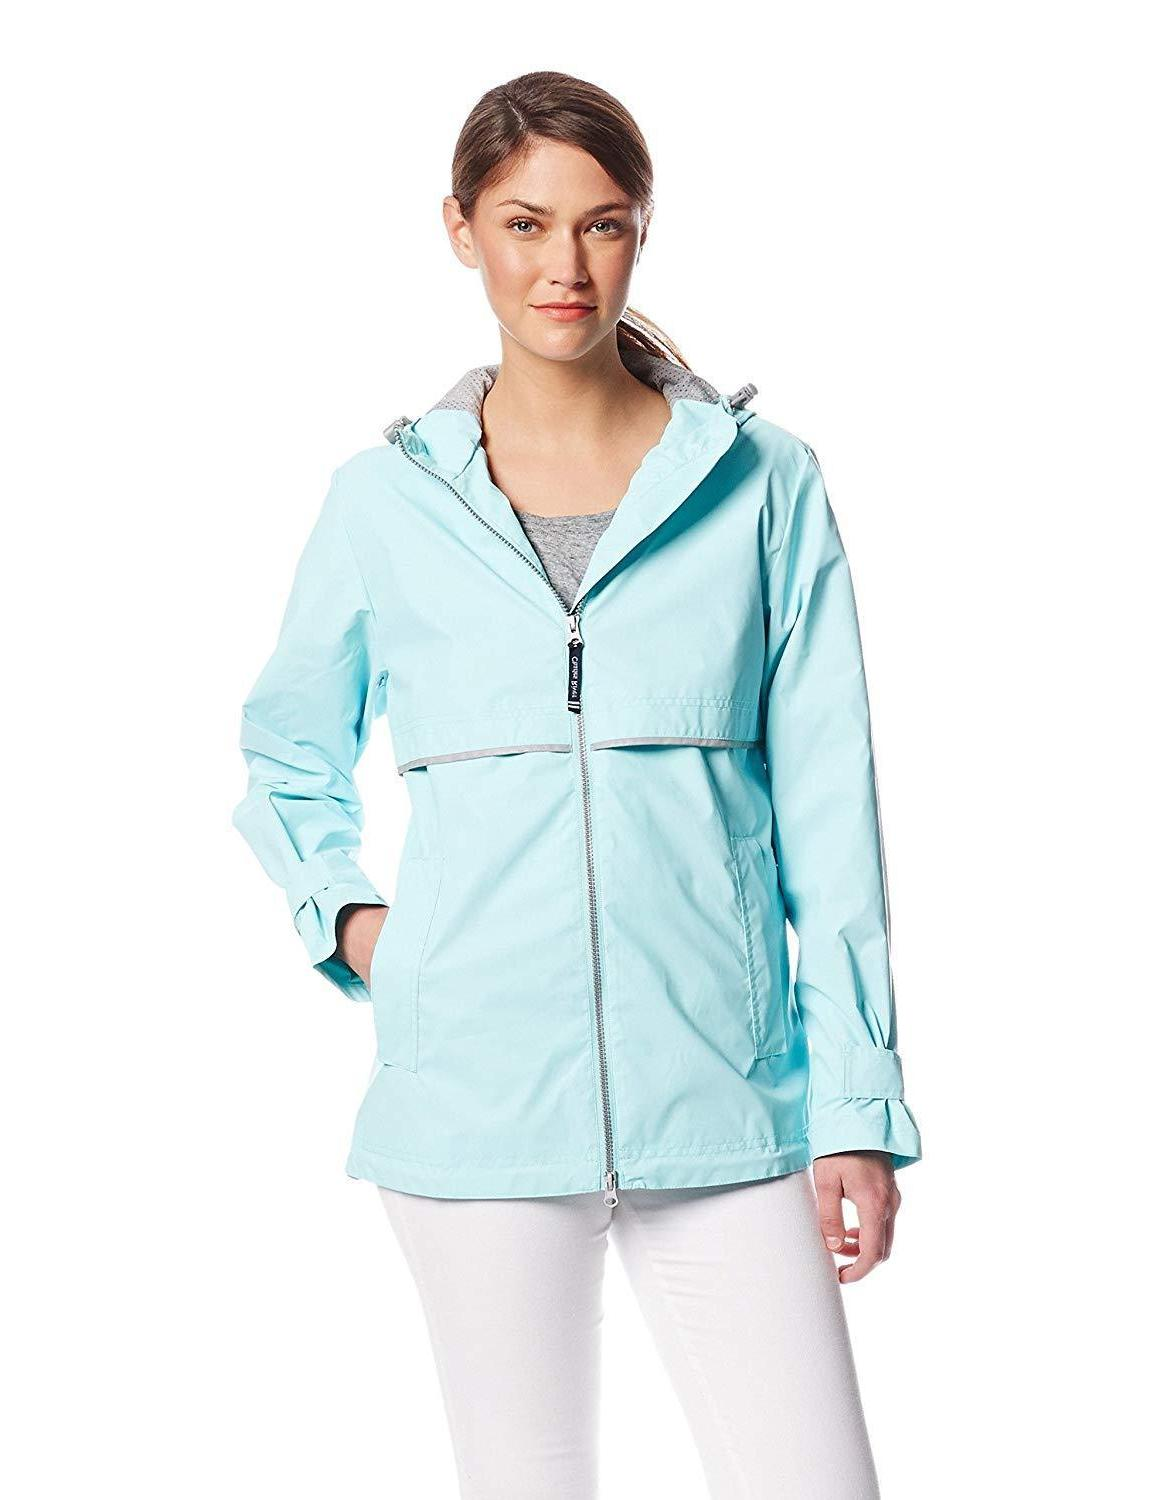 charles river apparel women s new englander